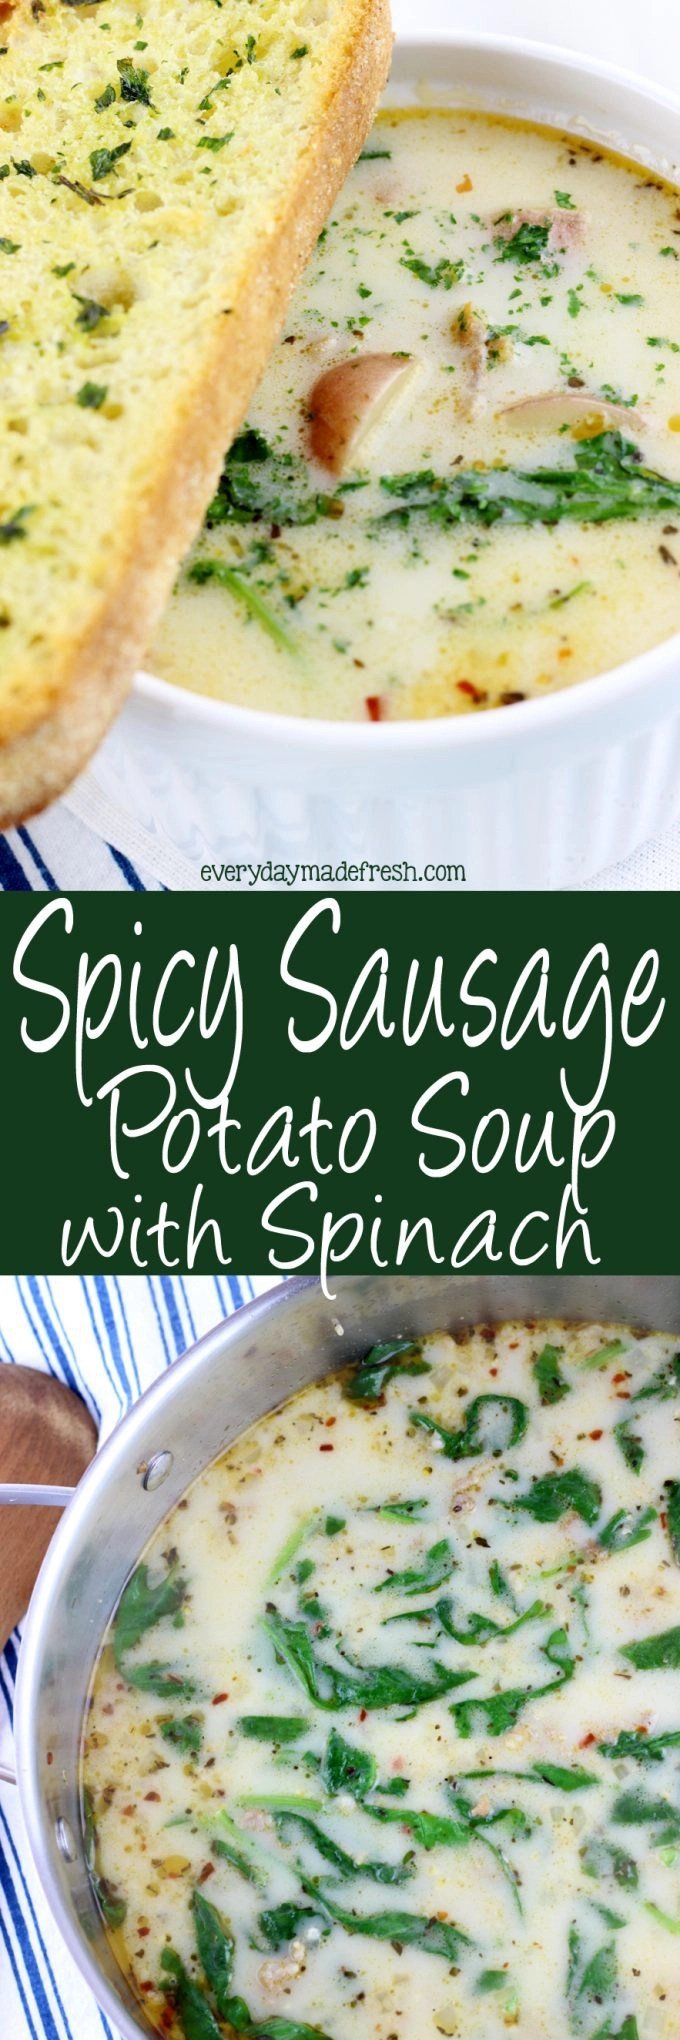 Spicy Sausage Potato Soup with Spinach is a quick soup to make that's loaded with flavor! It's one of our favorites to enjoy as the weather starts to cool down. | EverydayMadeFresh.com